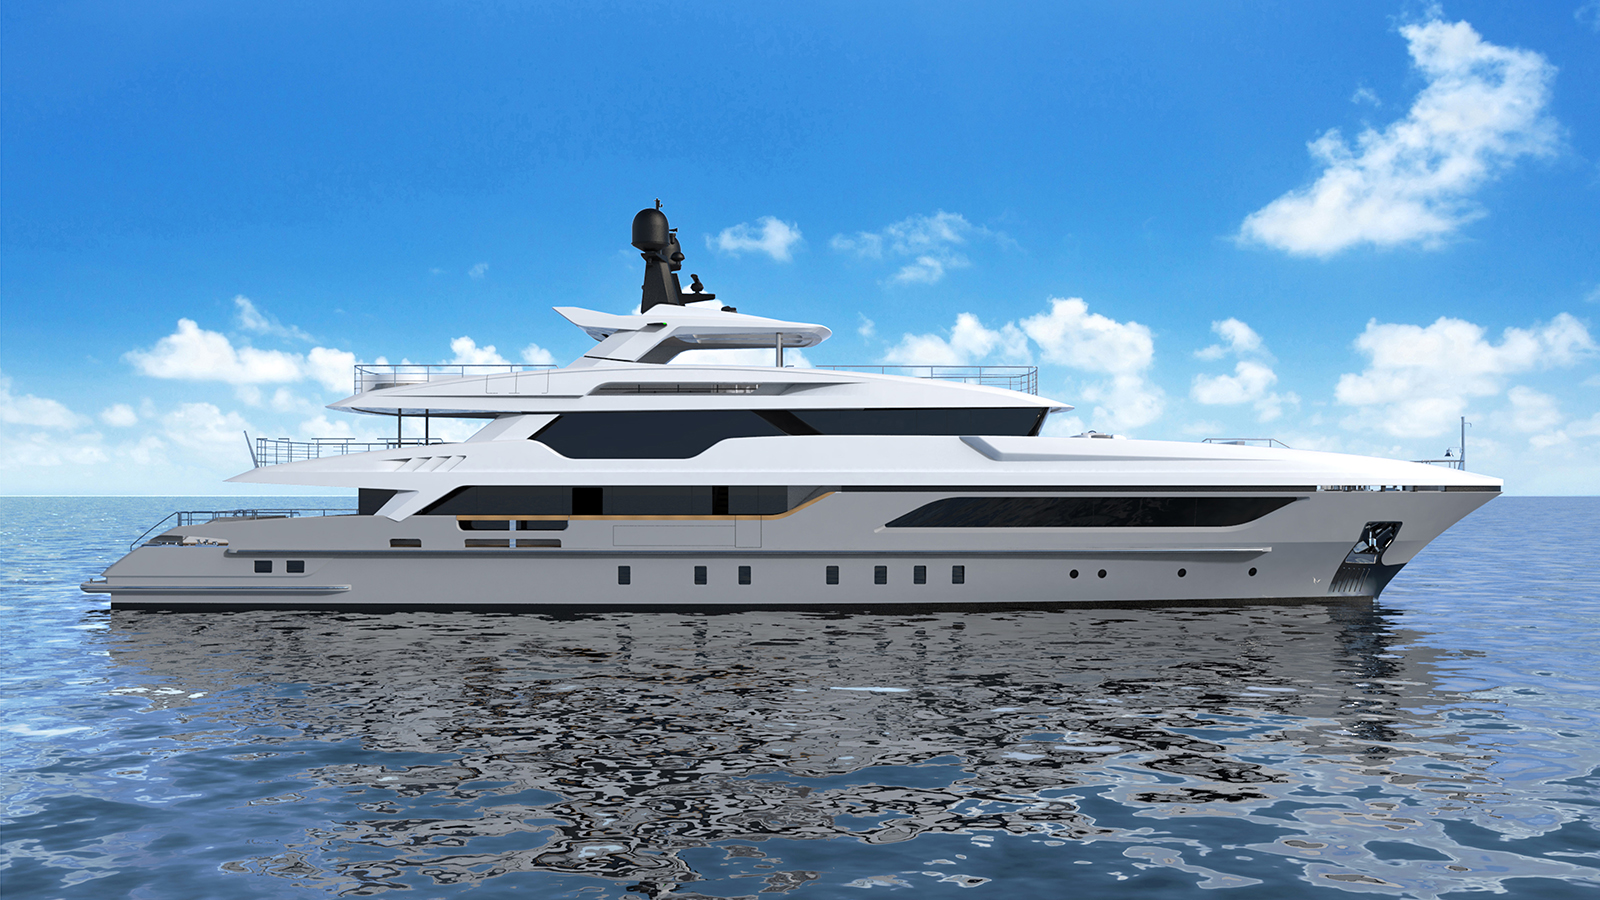 The launch of the Baglietto 48m is expected in July